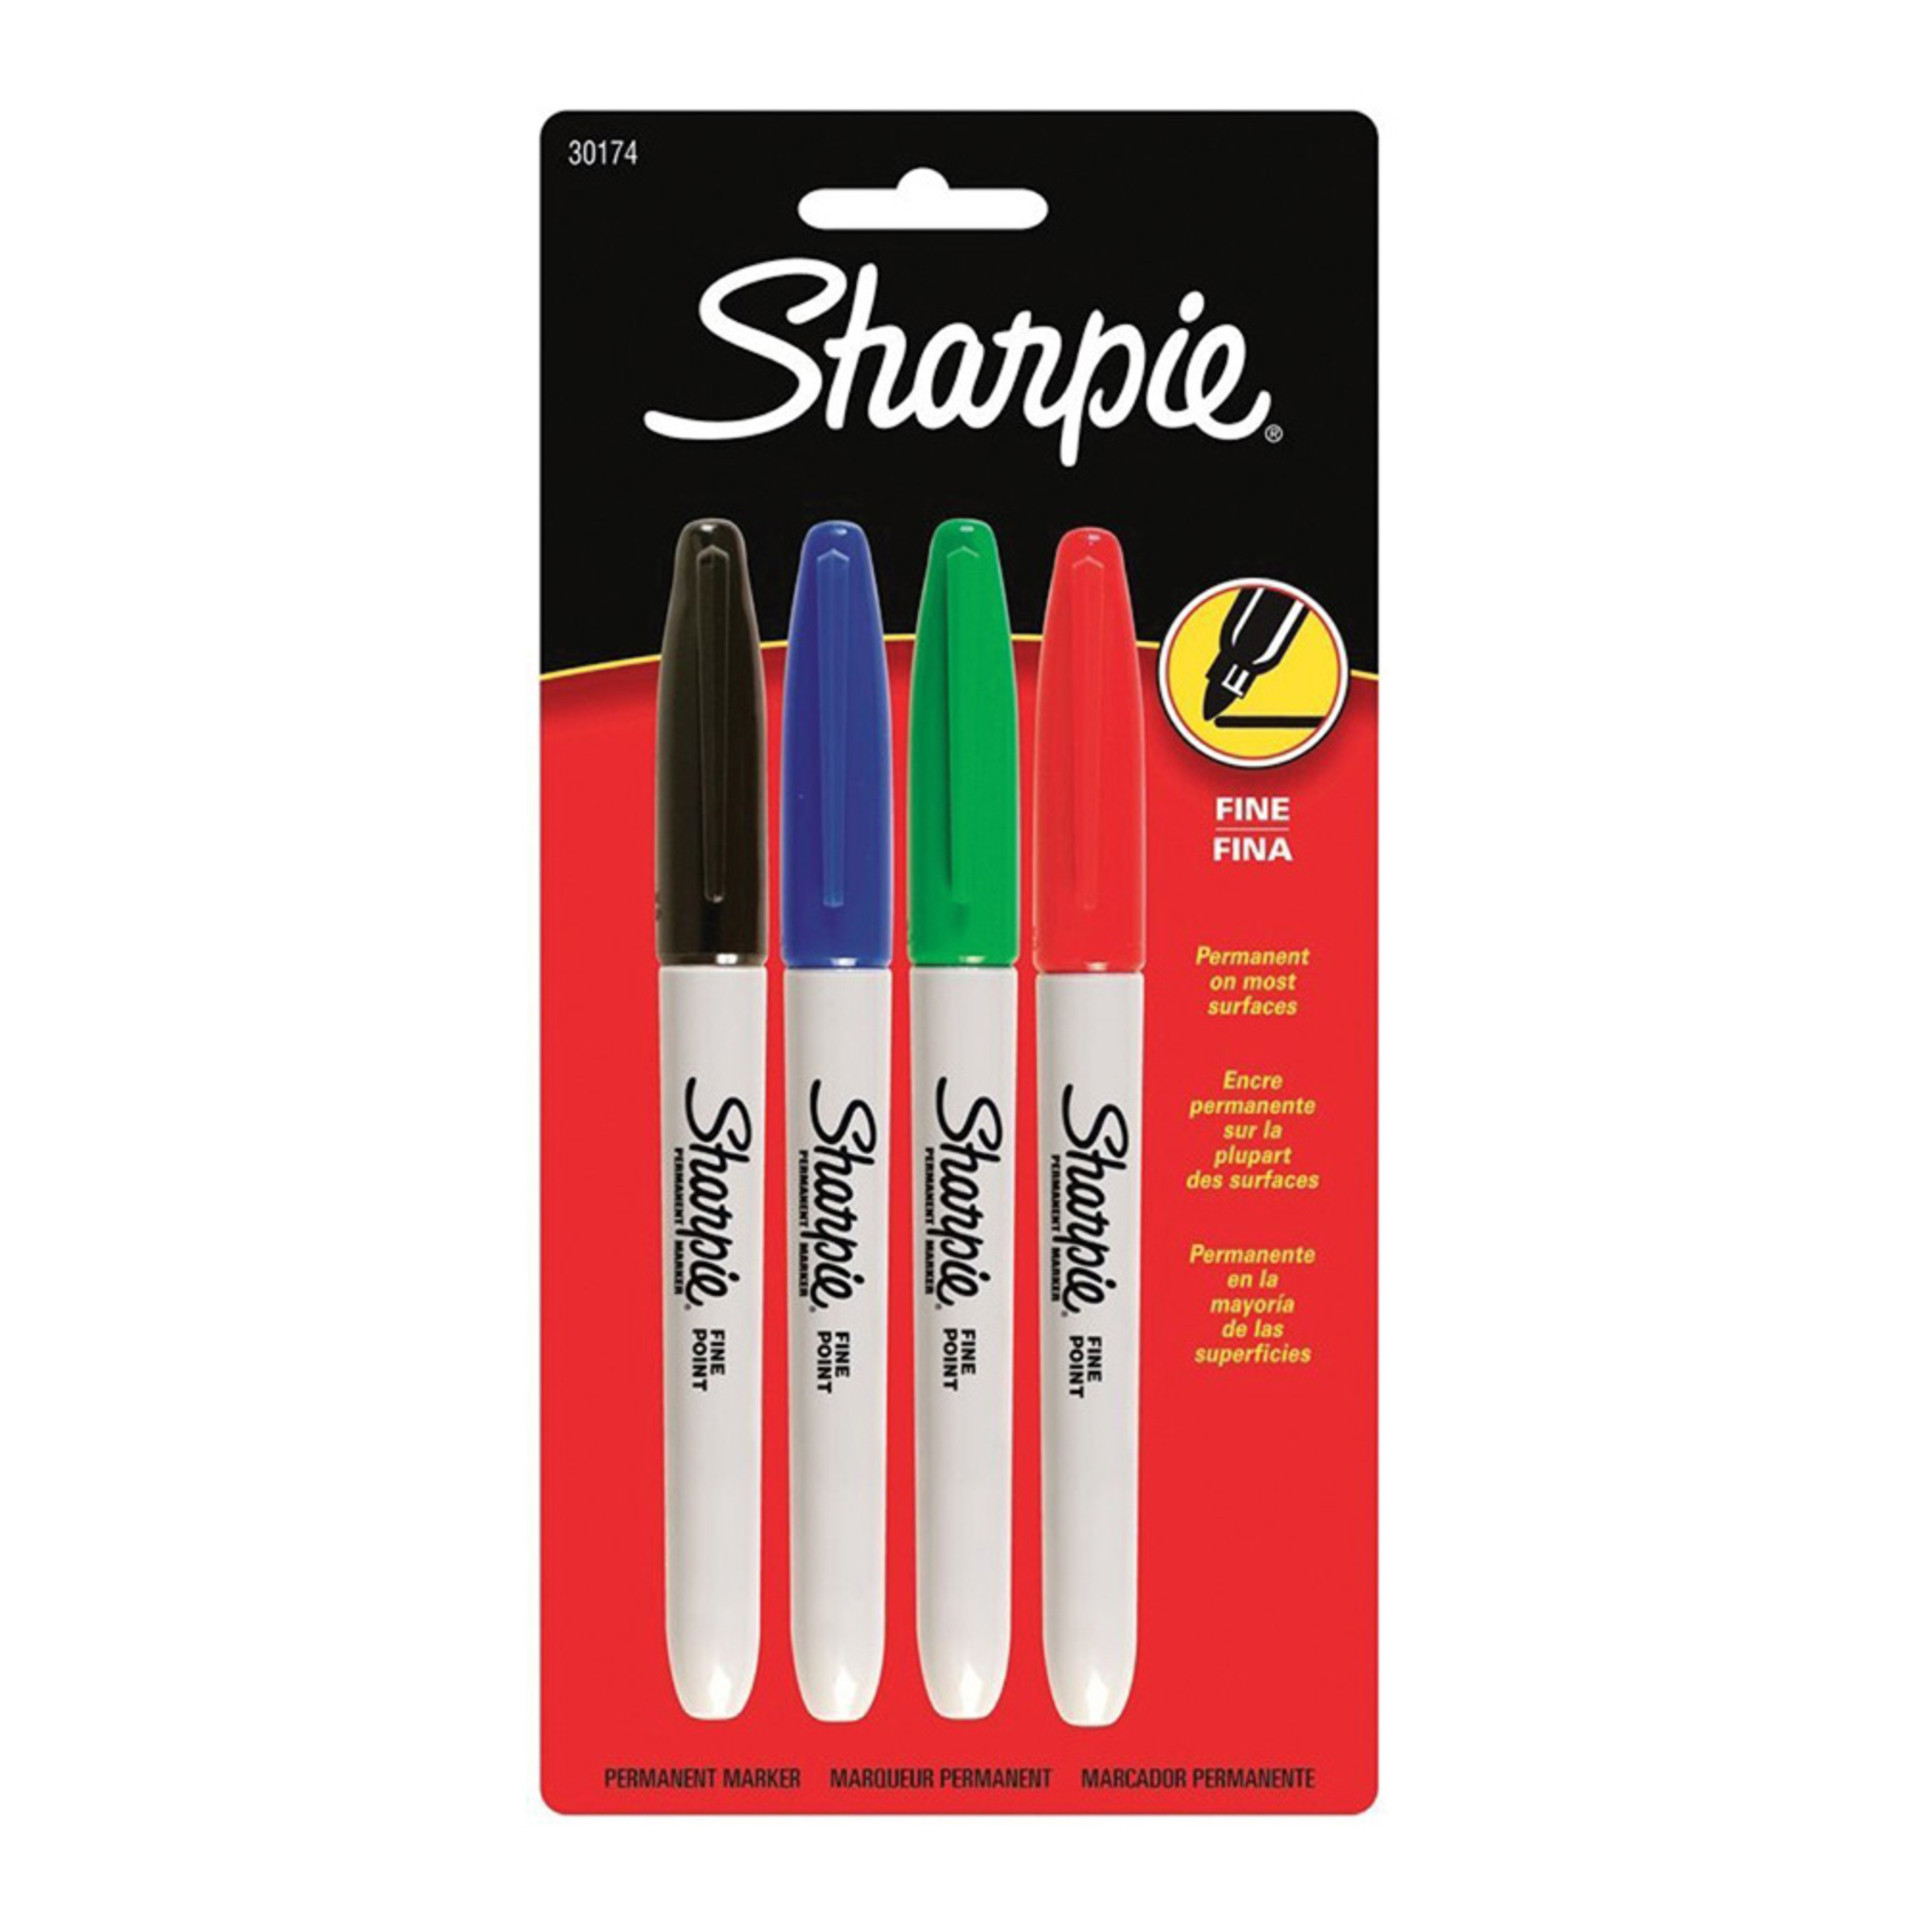 Sharpie Assorted Color Fine-Tip Markers 4 pack